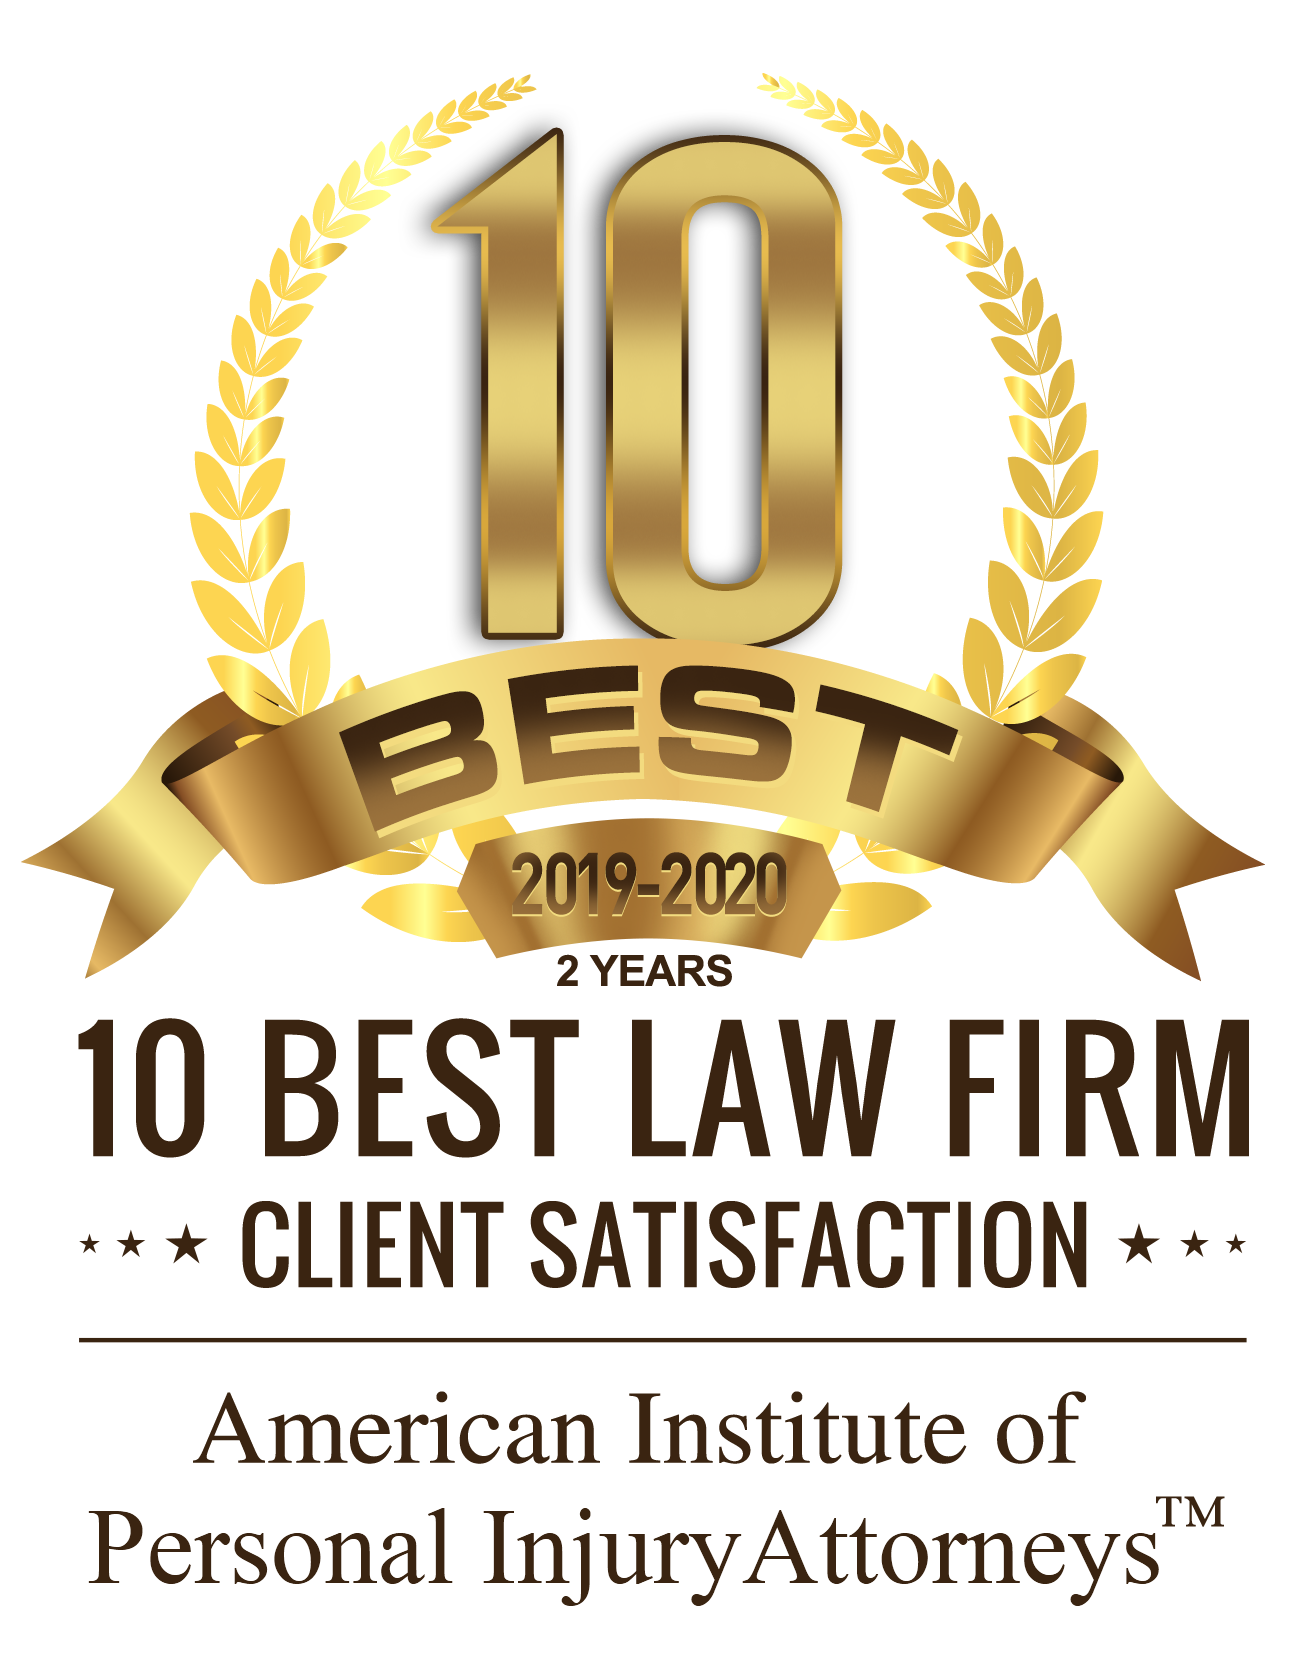 10 Best Law Firms / Client Satisfaction / American Institute of Personal Injury Attorneys 2019-2020